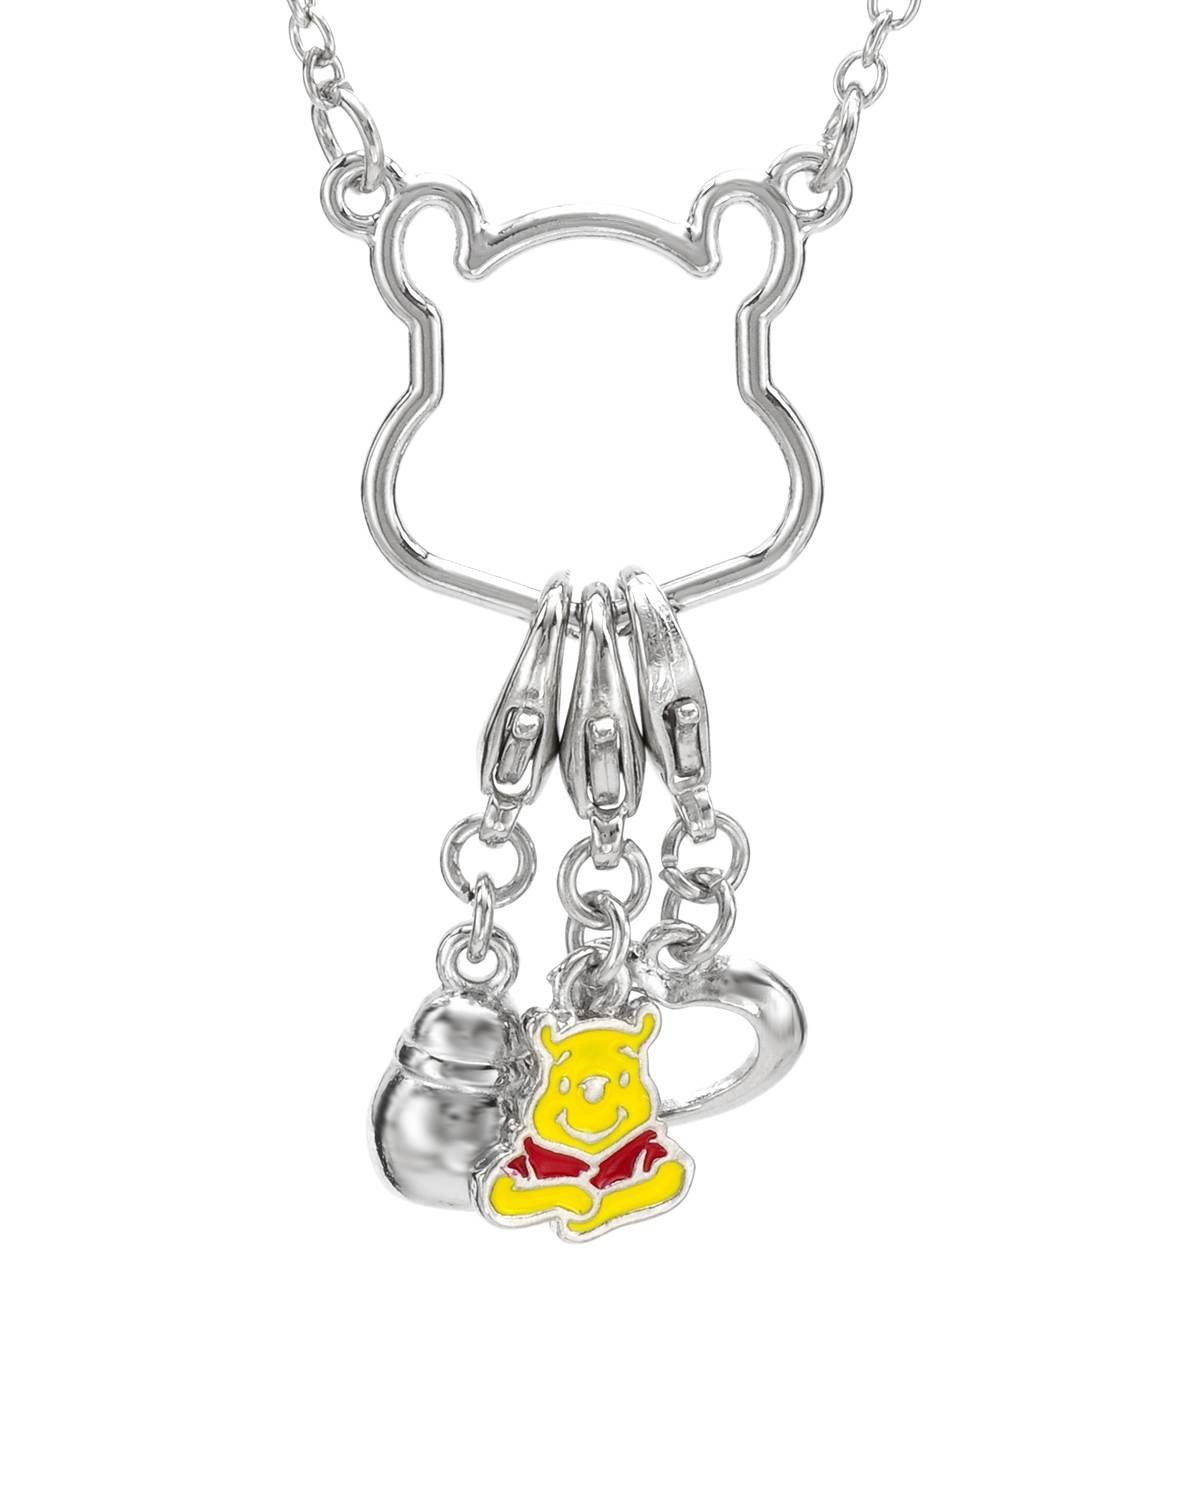 6f361517b DISNEY Brand Necklace - Winnie the Pooh in 2019   http://jaysfinds ...